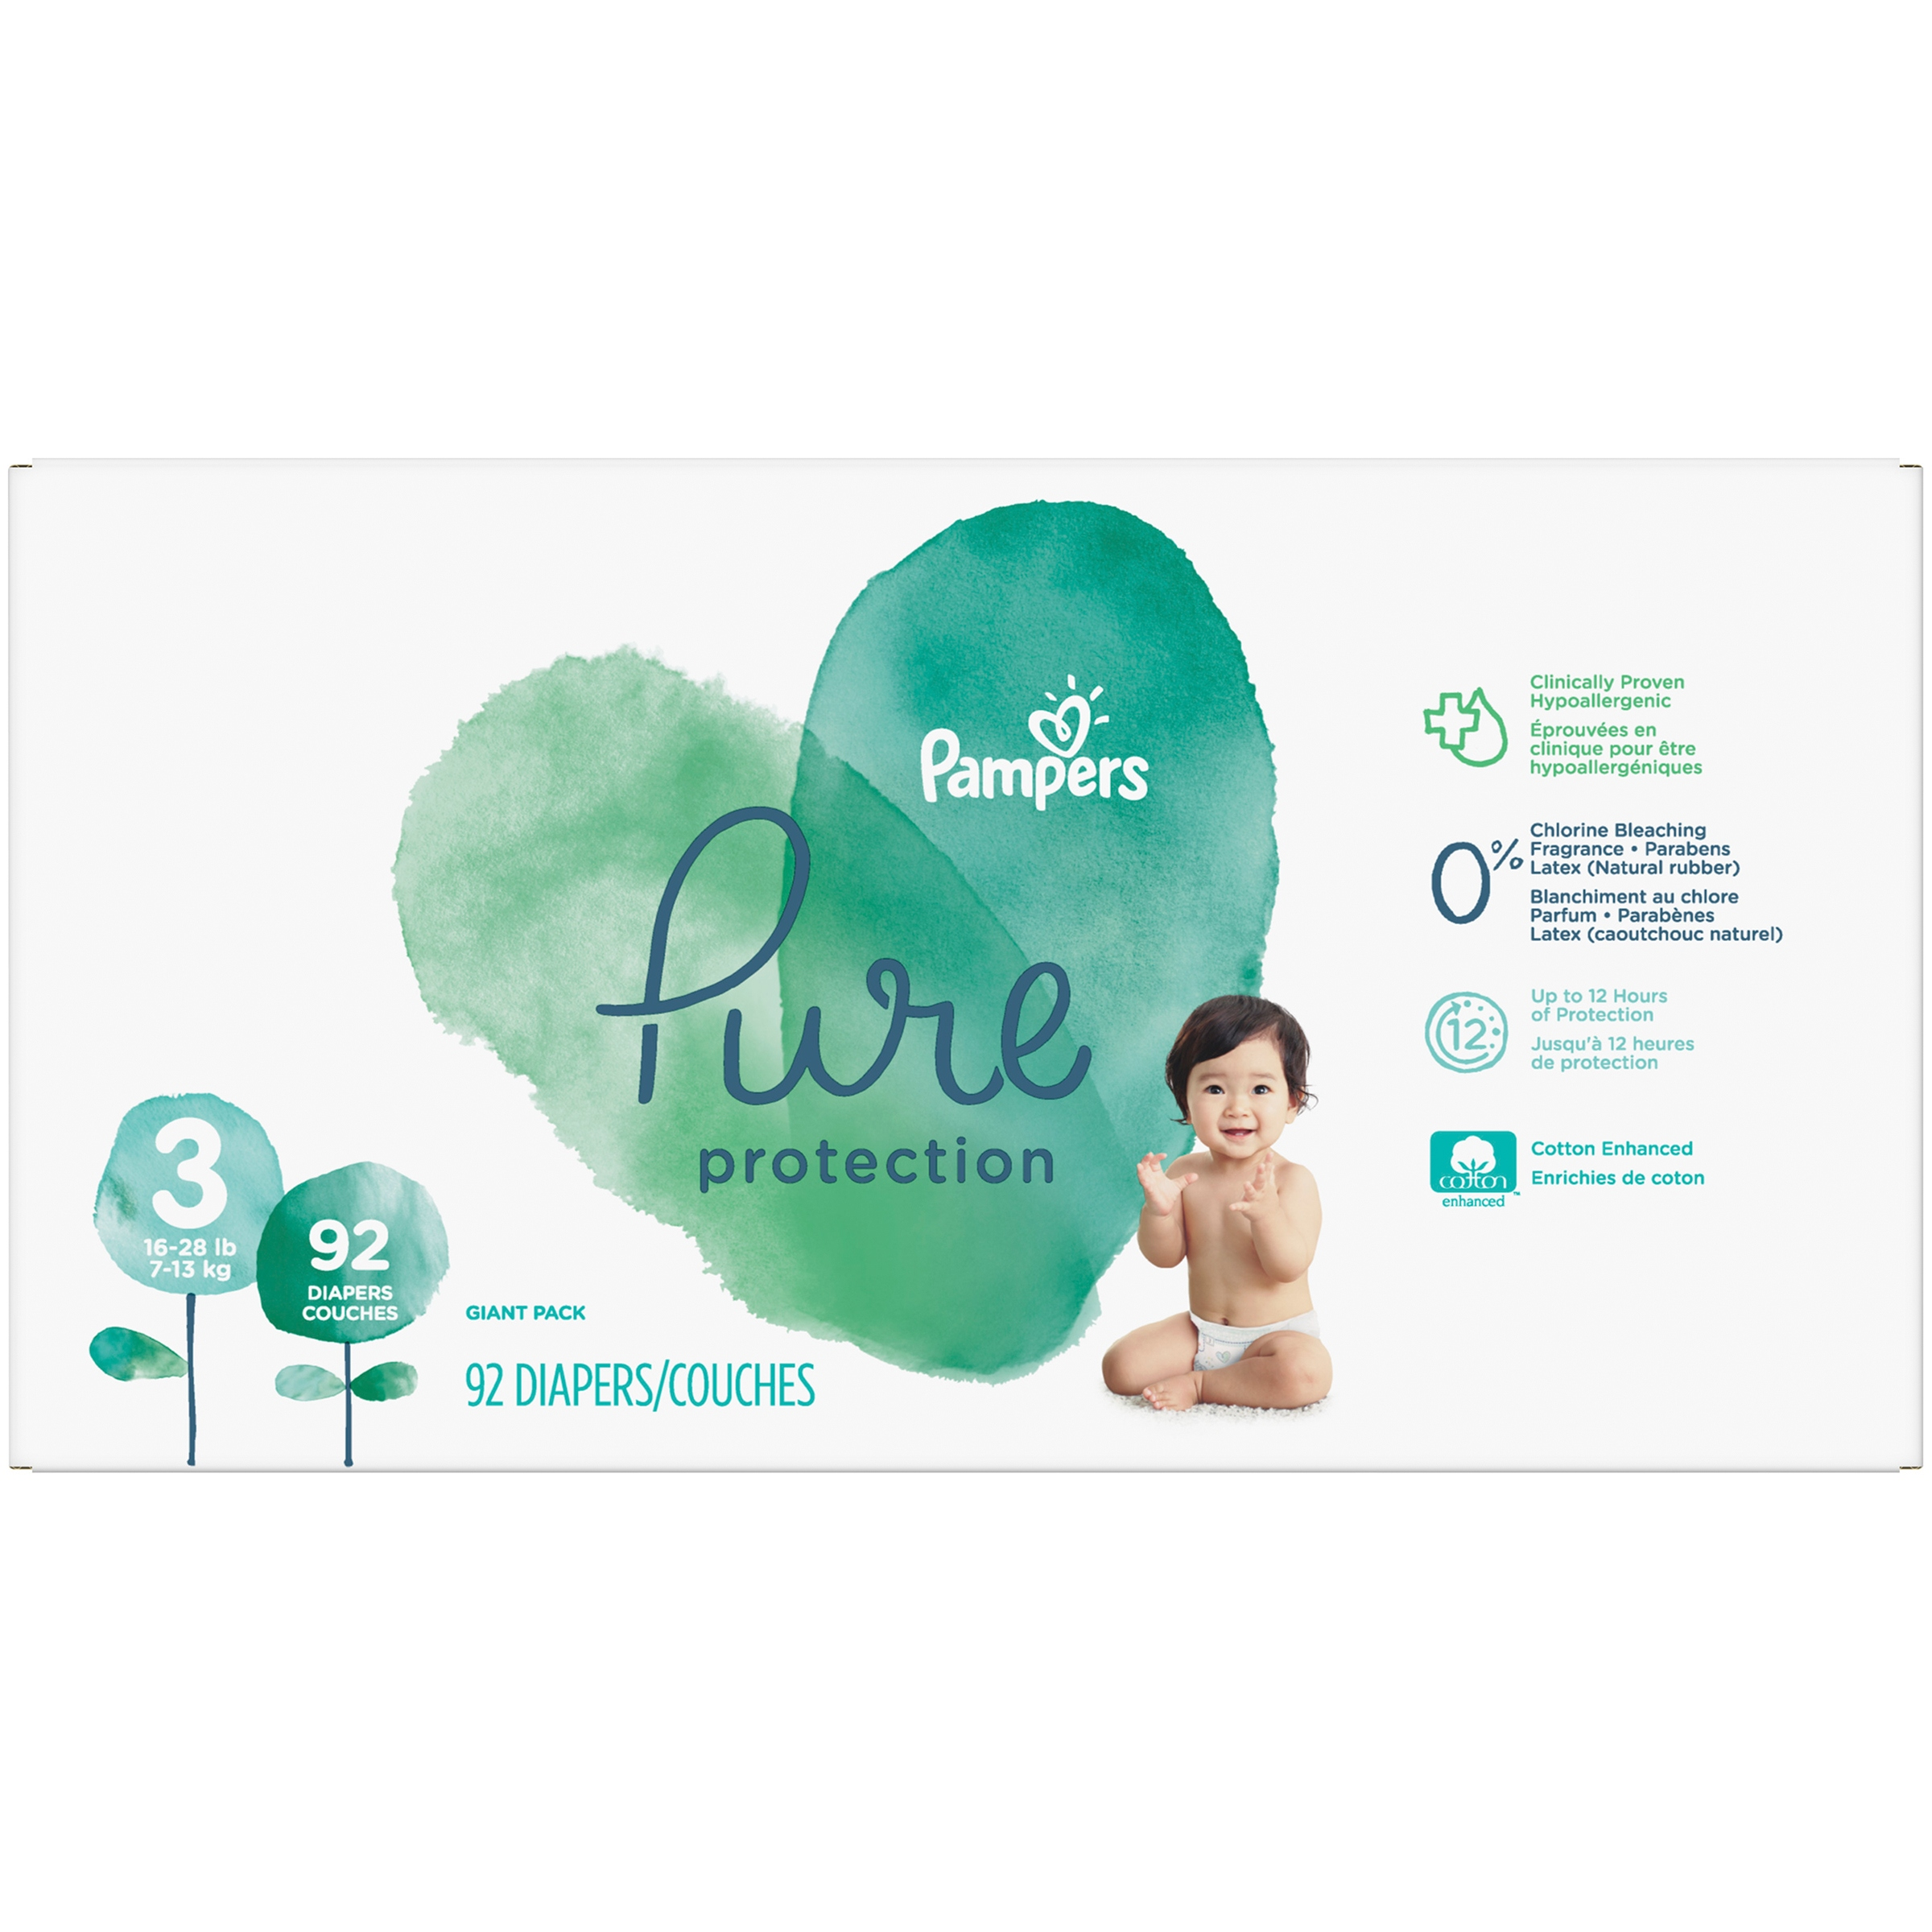 Pampers Pure Protection Disposable Diapers Giant Pack - Size 3 (92ct)